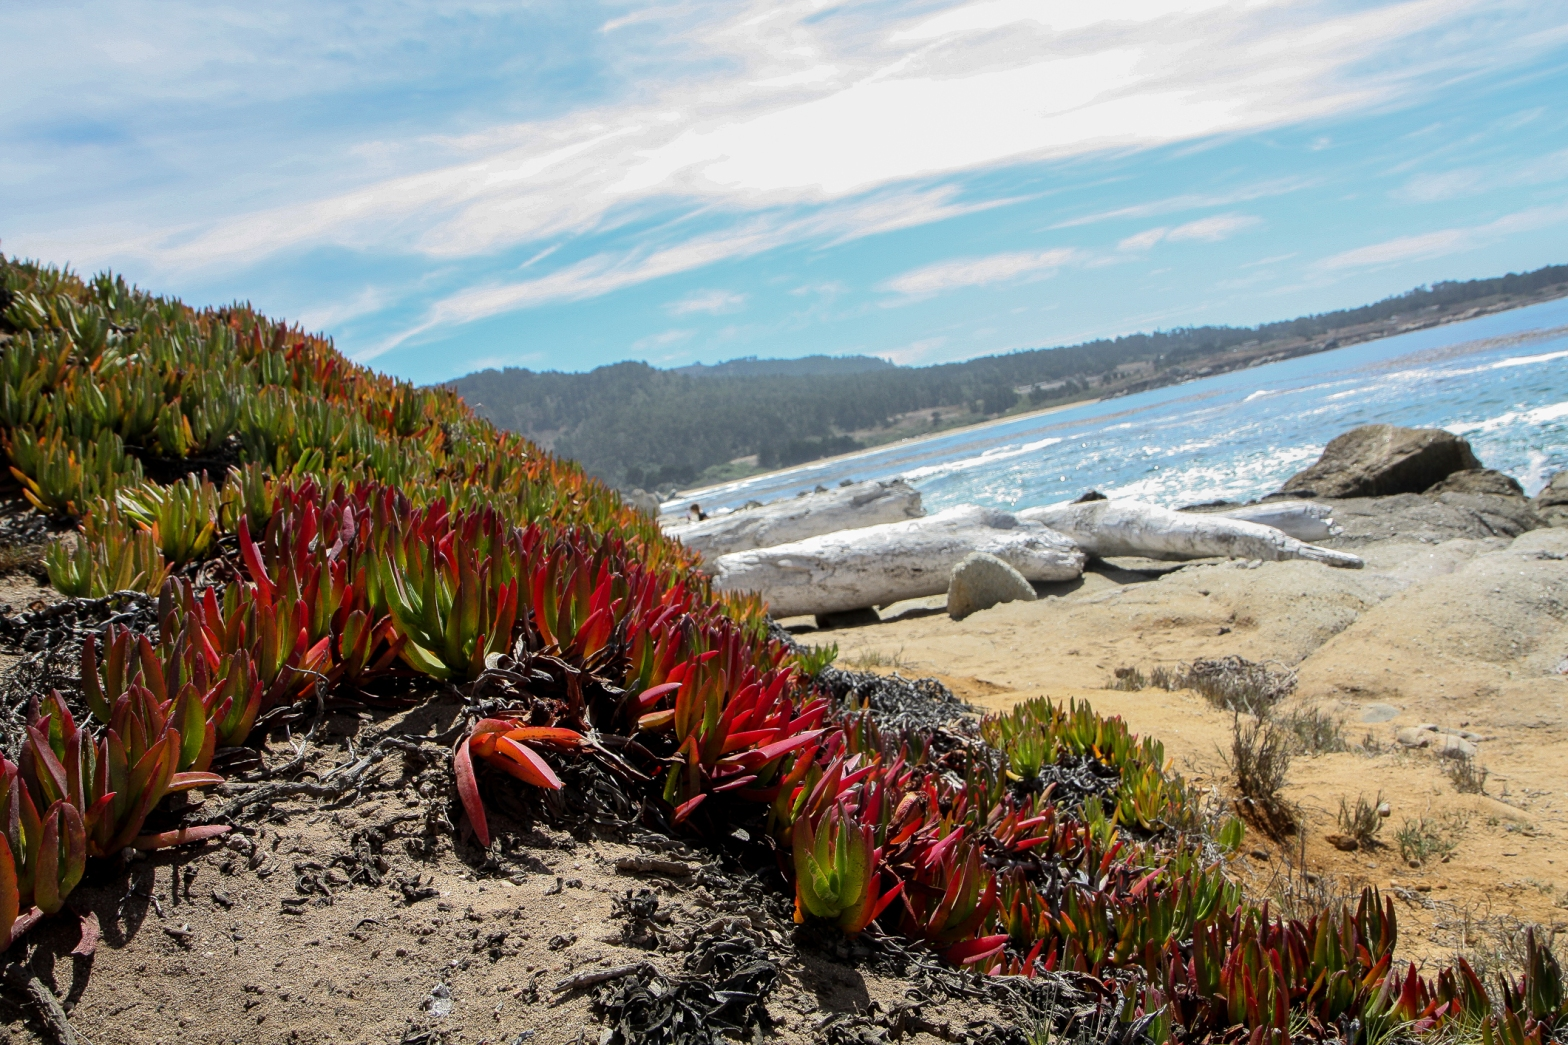 ice plant grows on the hills facing the ocean